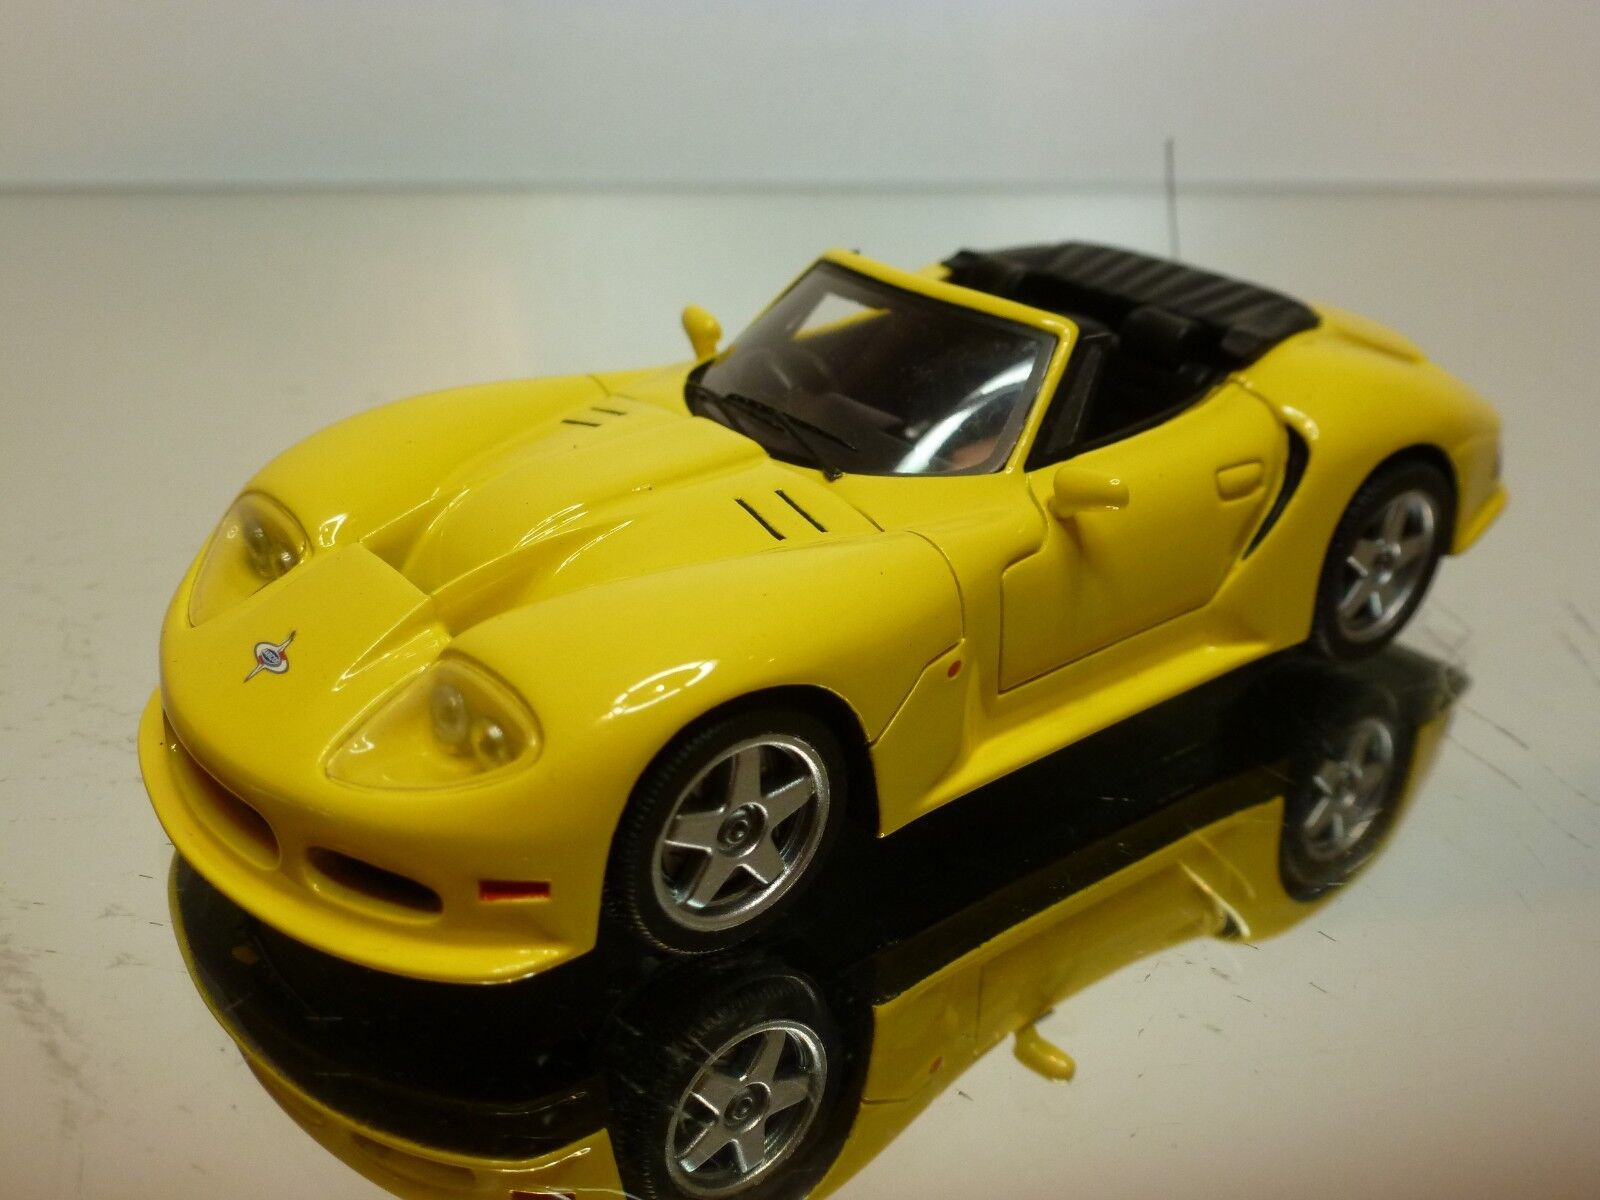 SPARK 50787 MARCOS LM 500 CONgreenIBLE 1996 - YELLOW 1 43 - EXCELLENT - 24